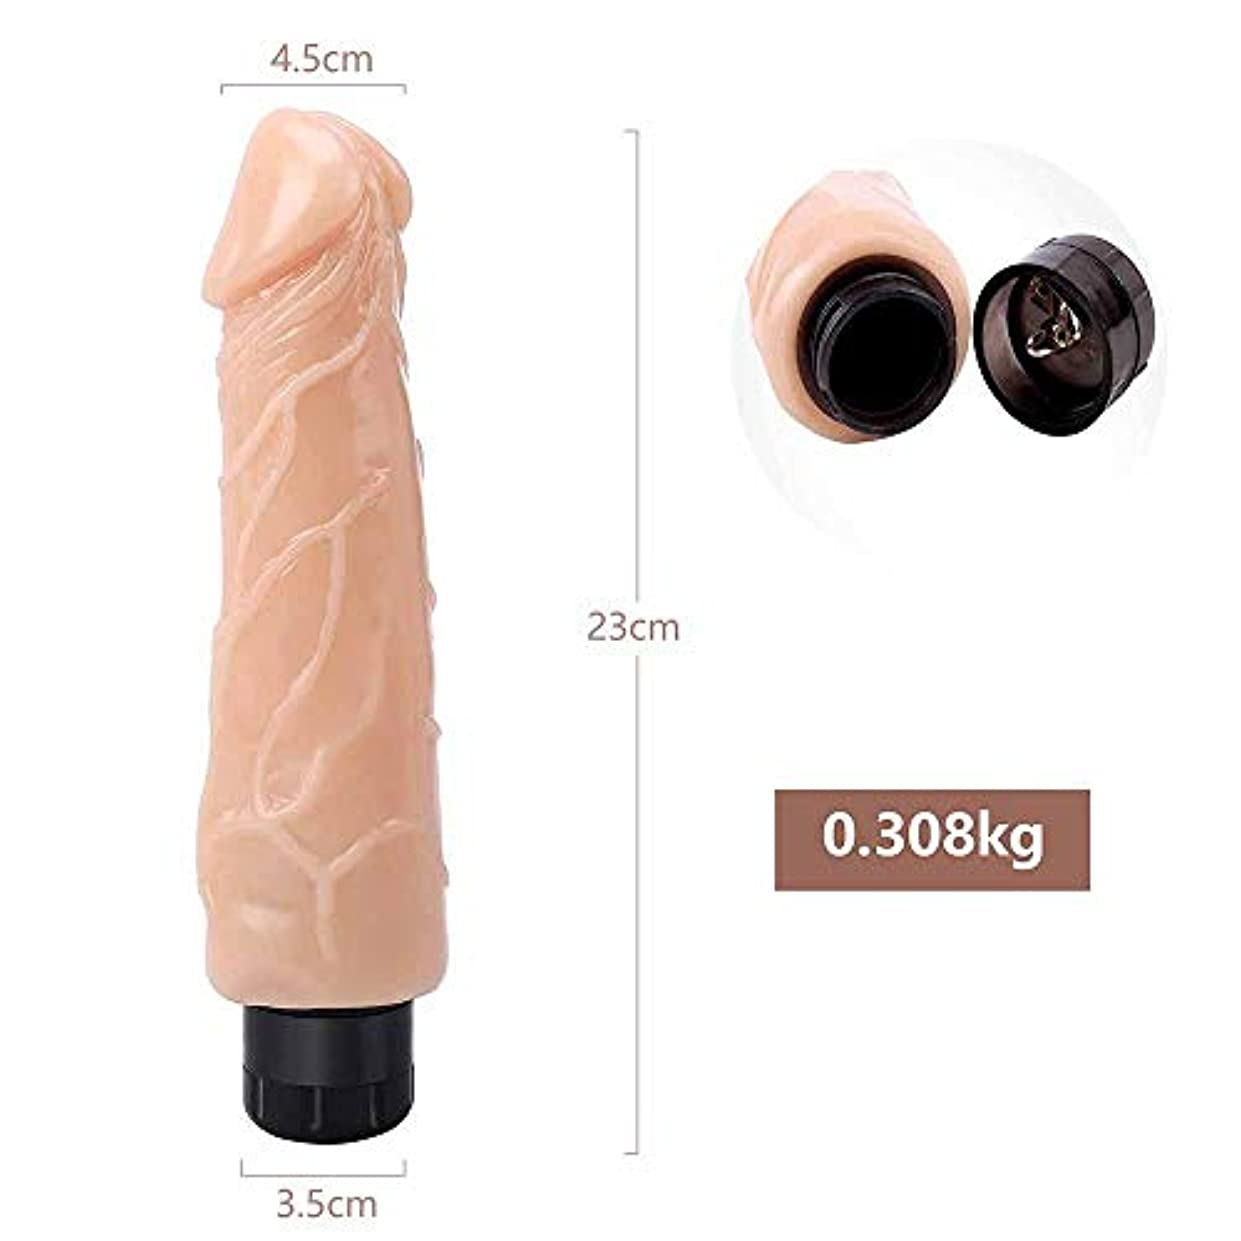 寺院季節ハンマーChicShop US 9 in Realistic-Dicks Women Relax Massager for Women男性用 、慎重なパッケージ